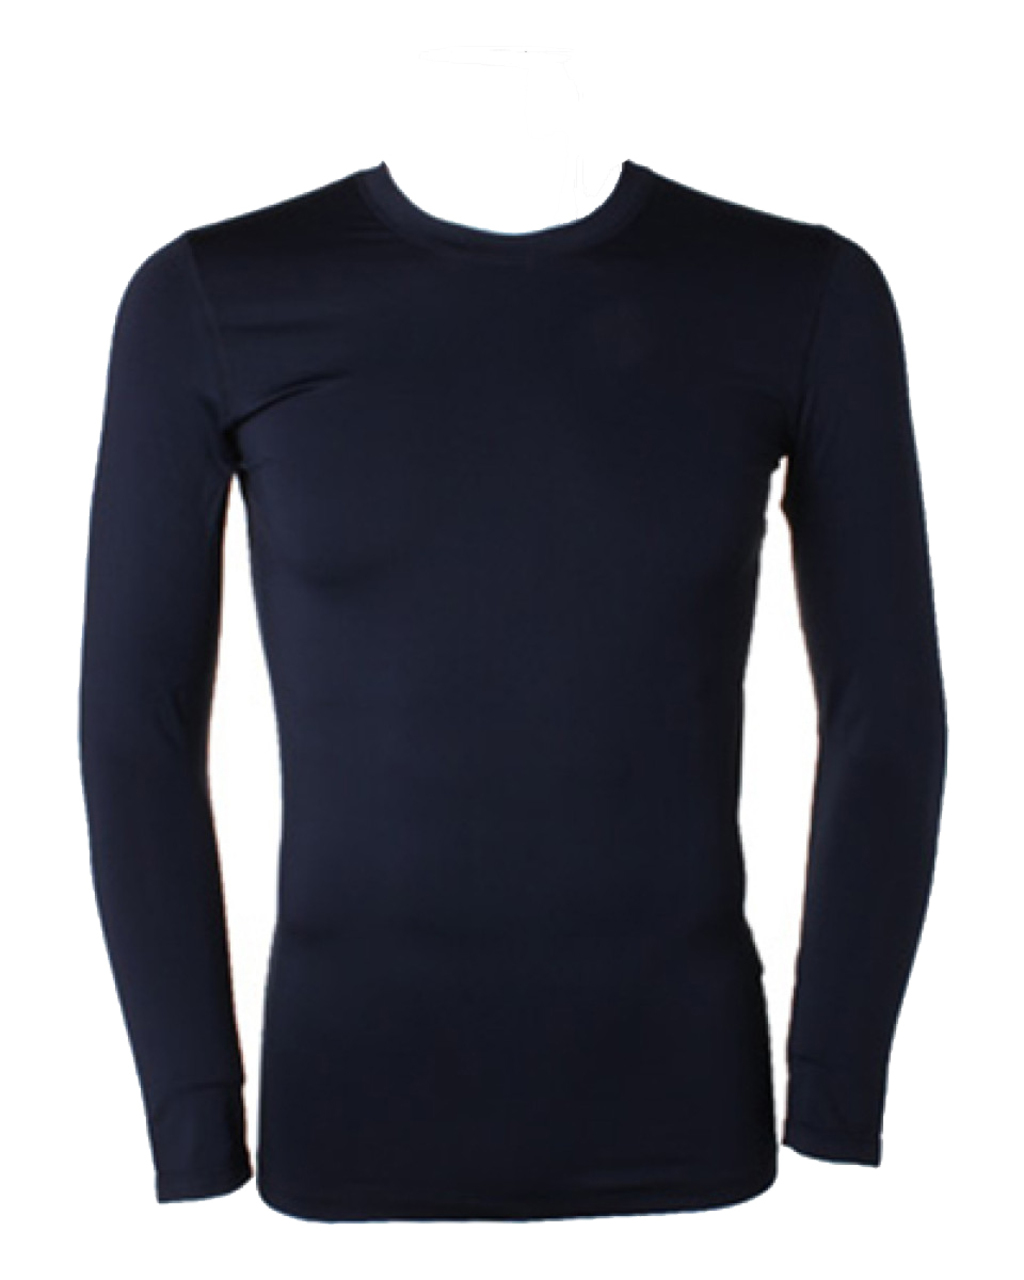 Gamegear Men/'s Warmtex Long Sleeve Compression Baselayer Skin Tight Top KK979